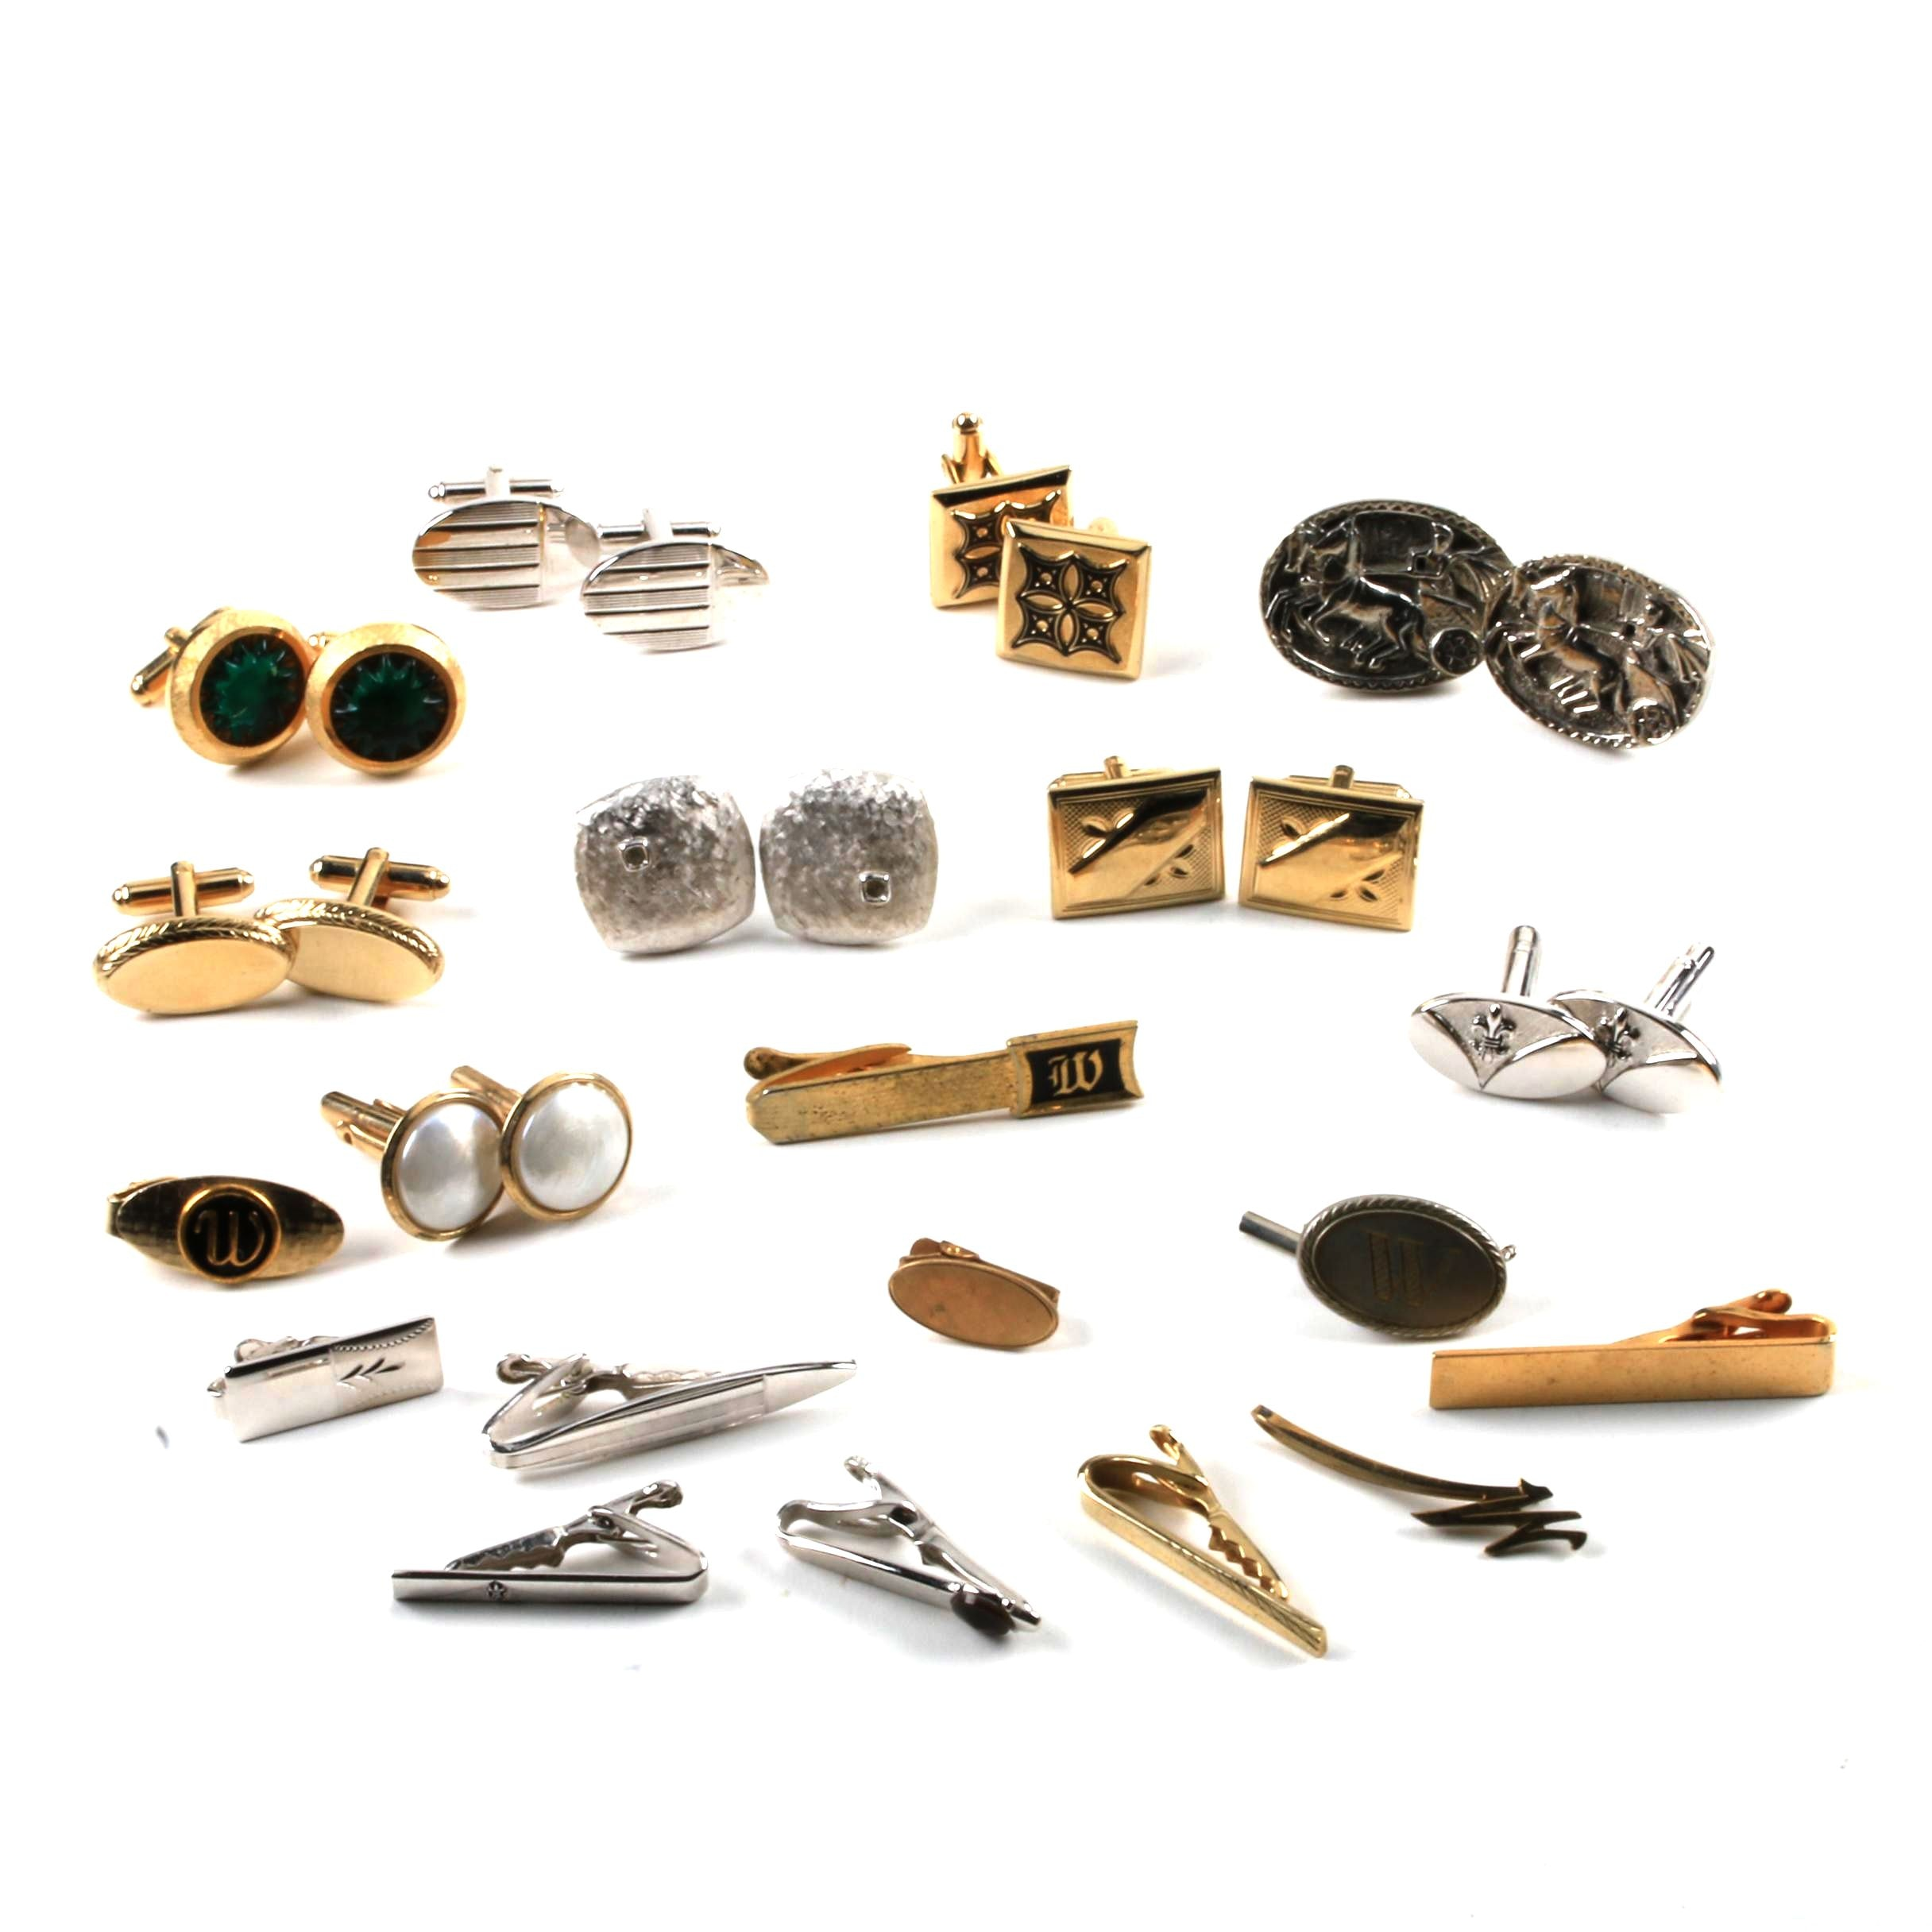 Assortment of Cufflinks and Tie Bars